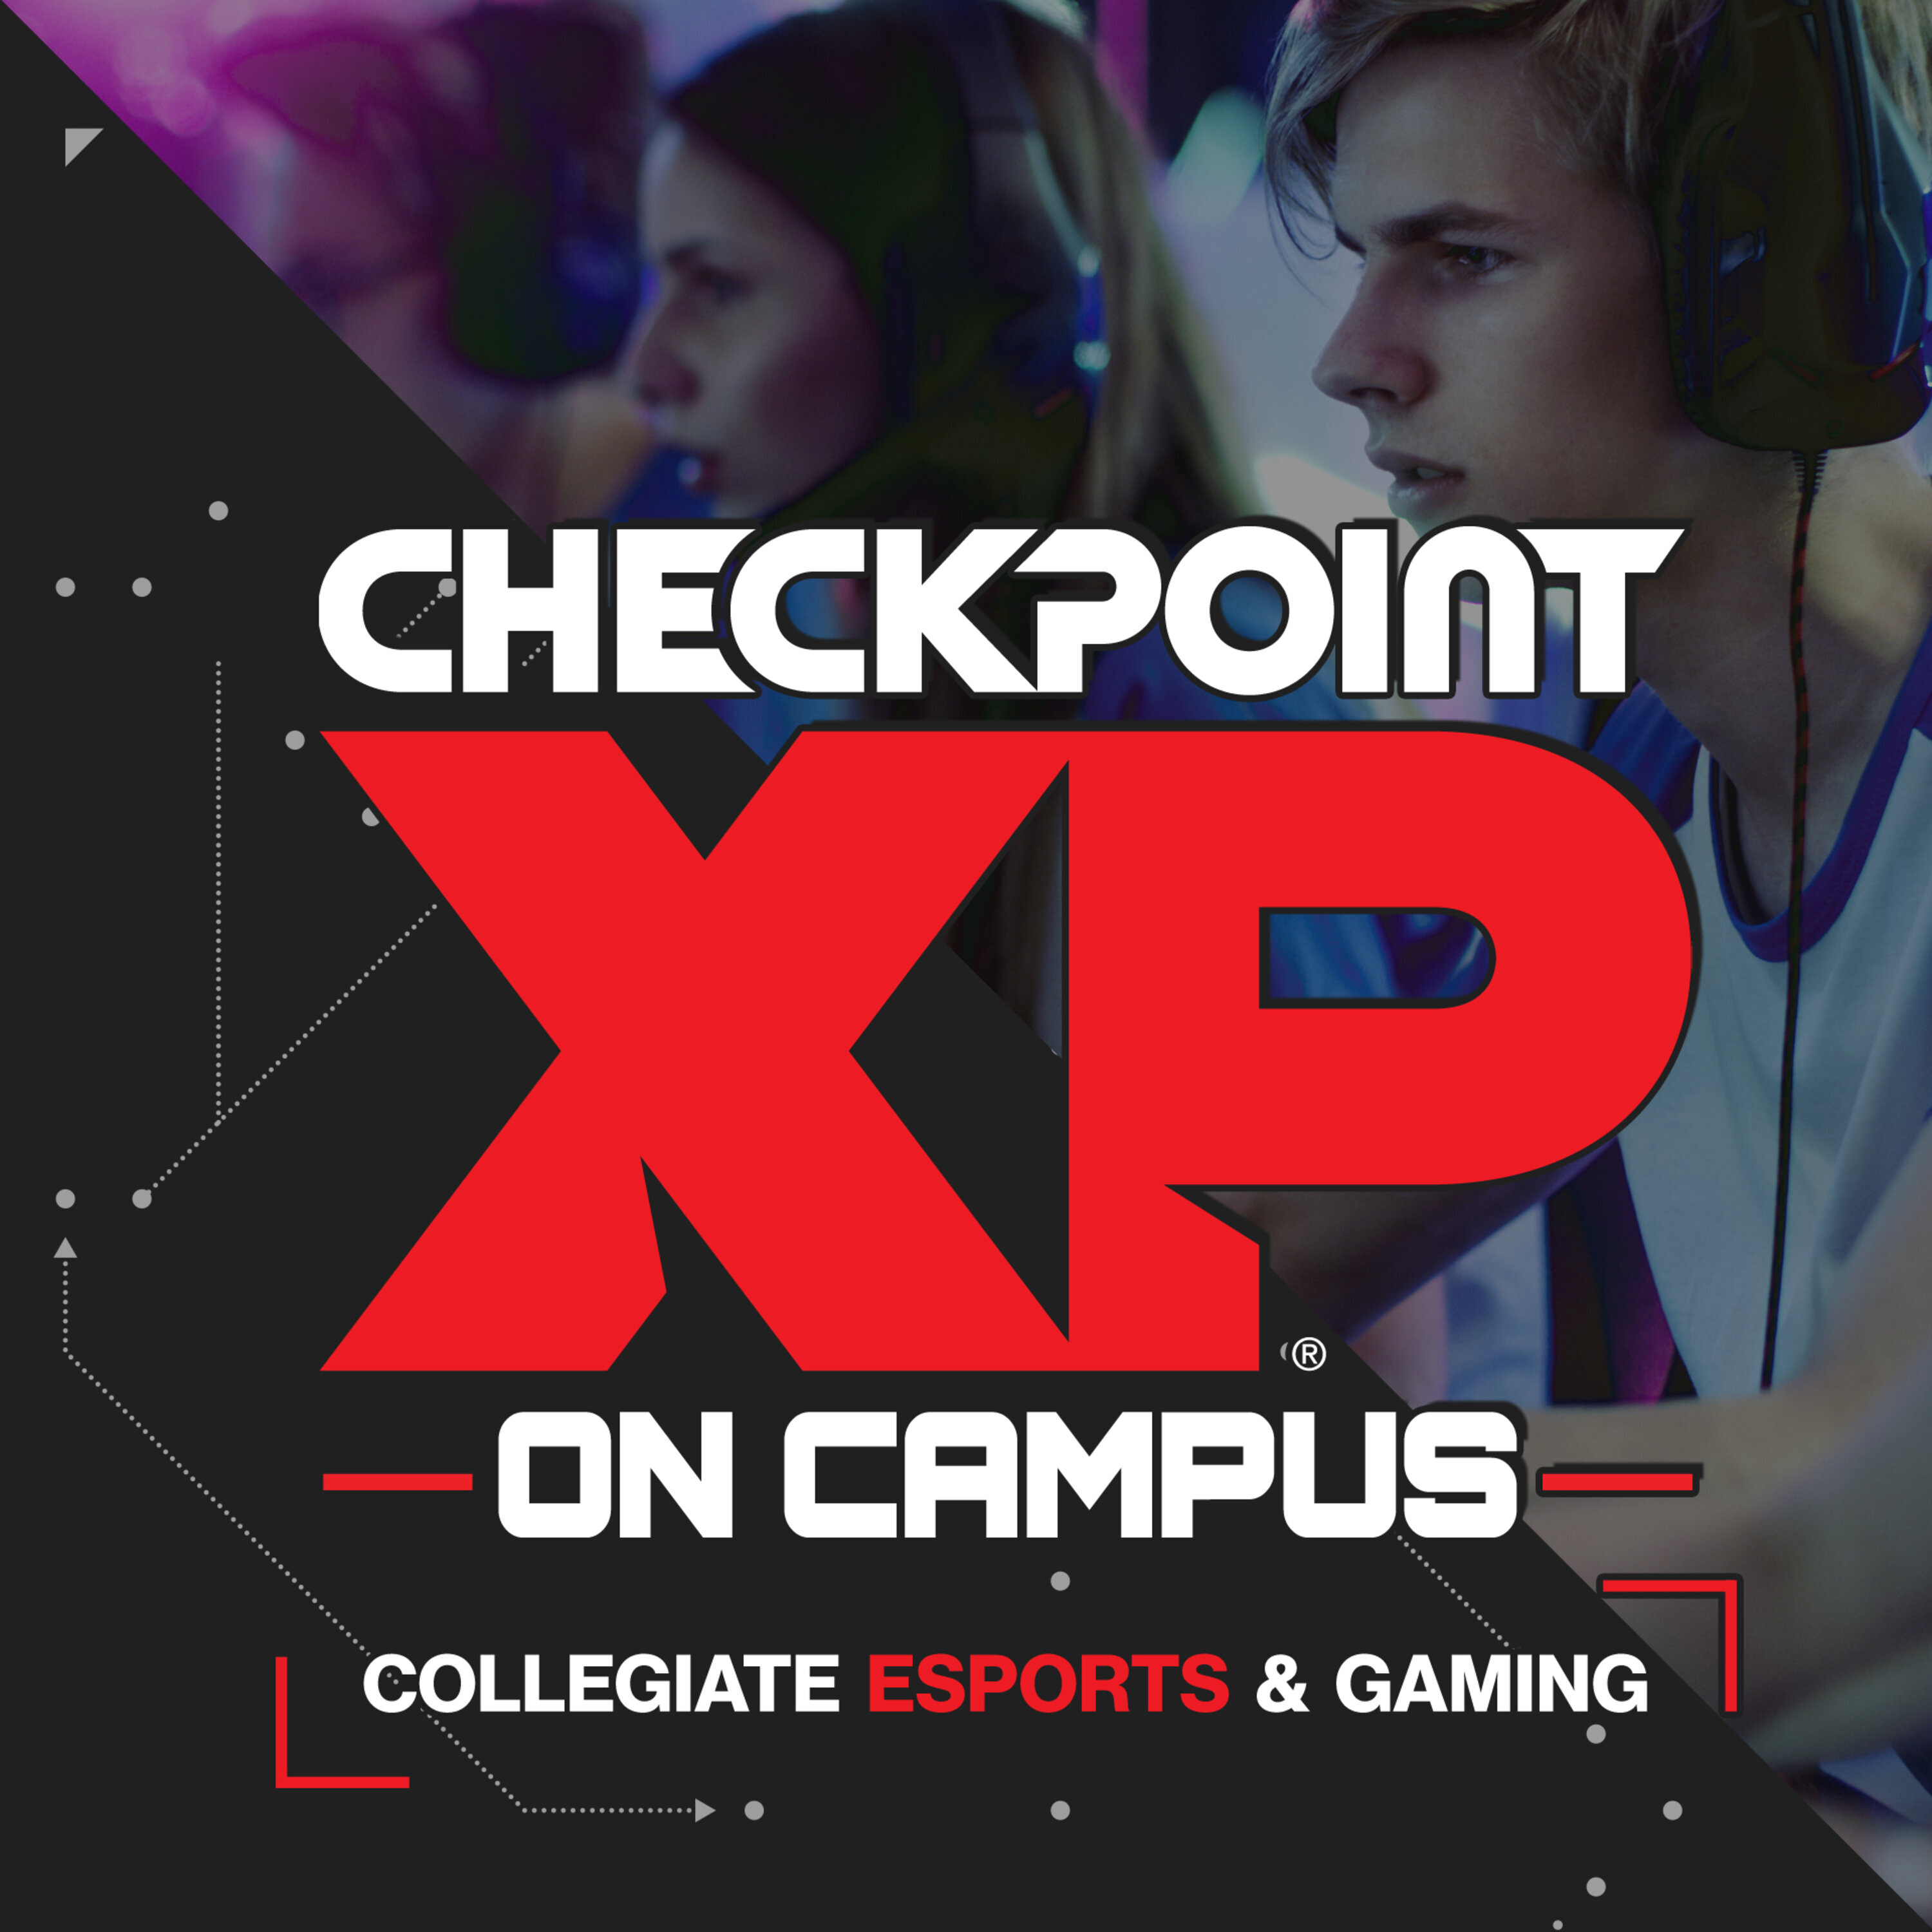 Can College Esports Fill The Void of College Football? | No Sports for Big Ten/Pac-12